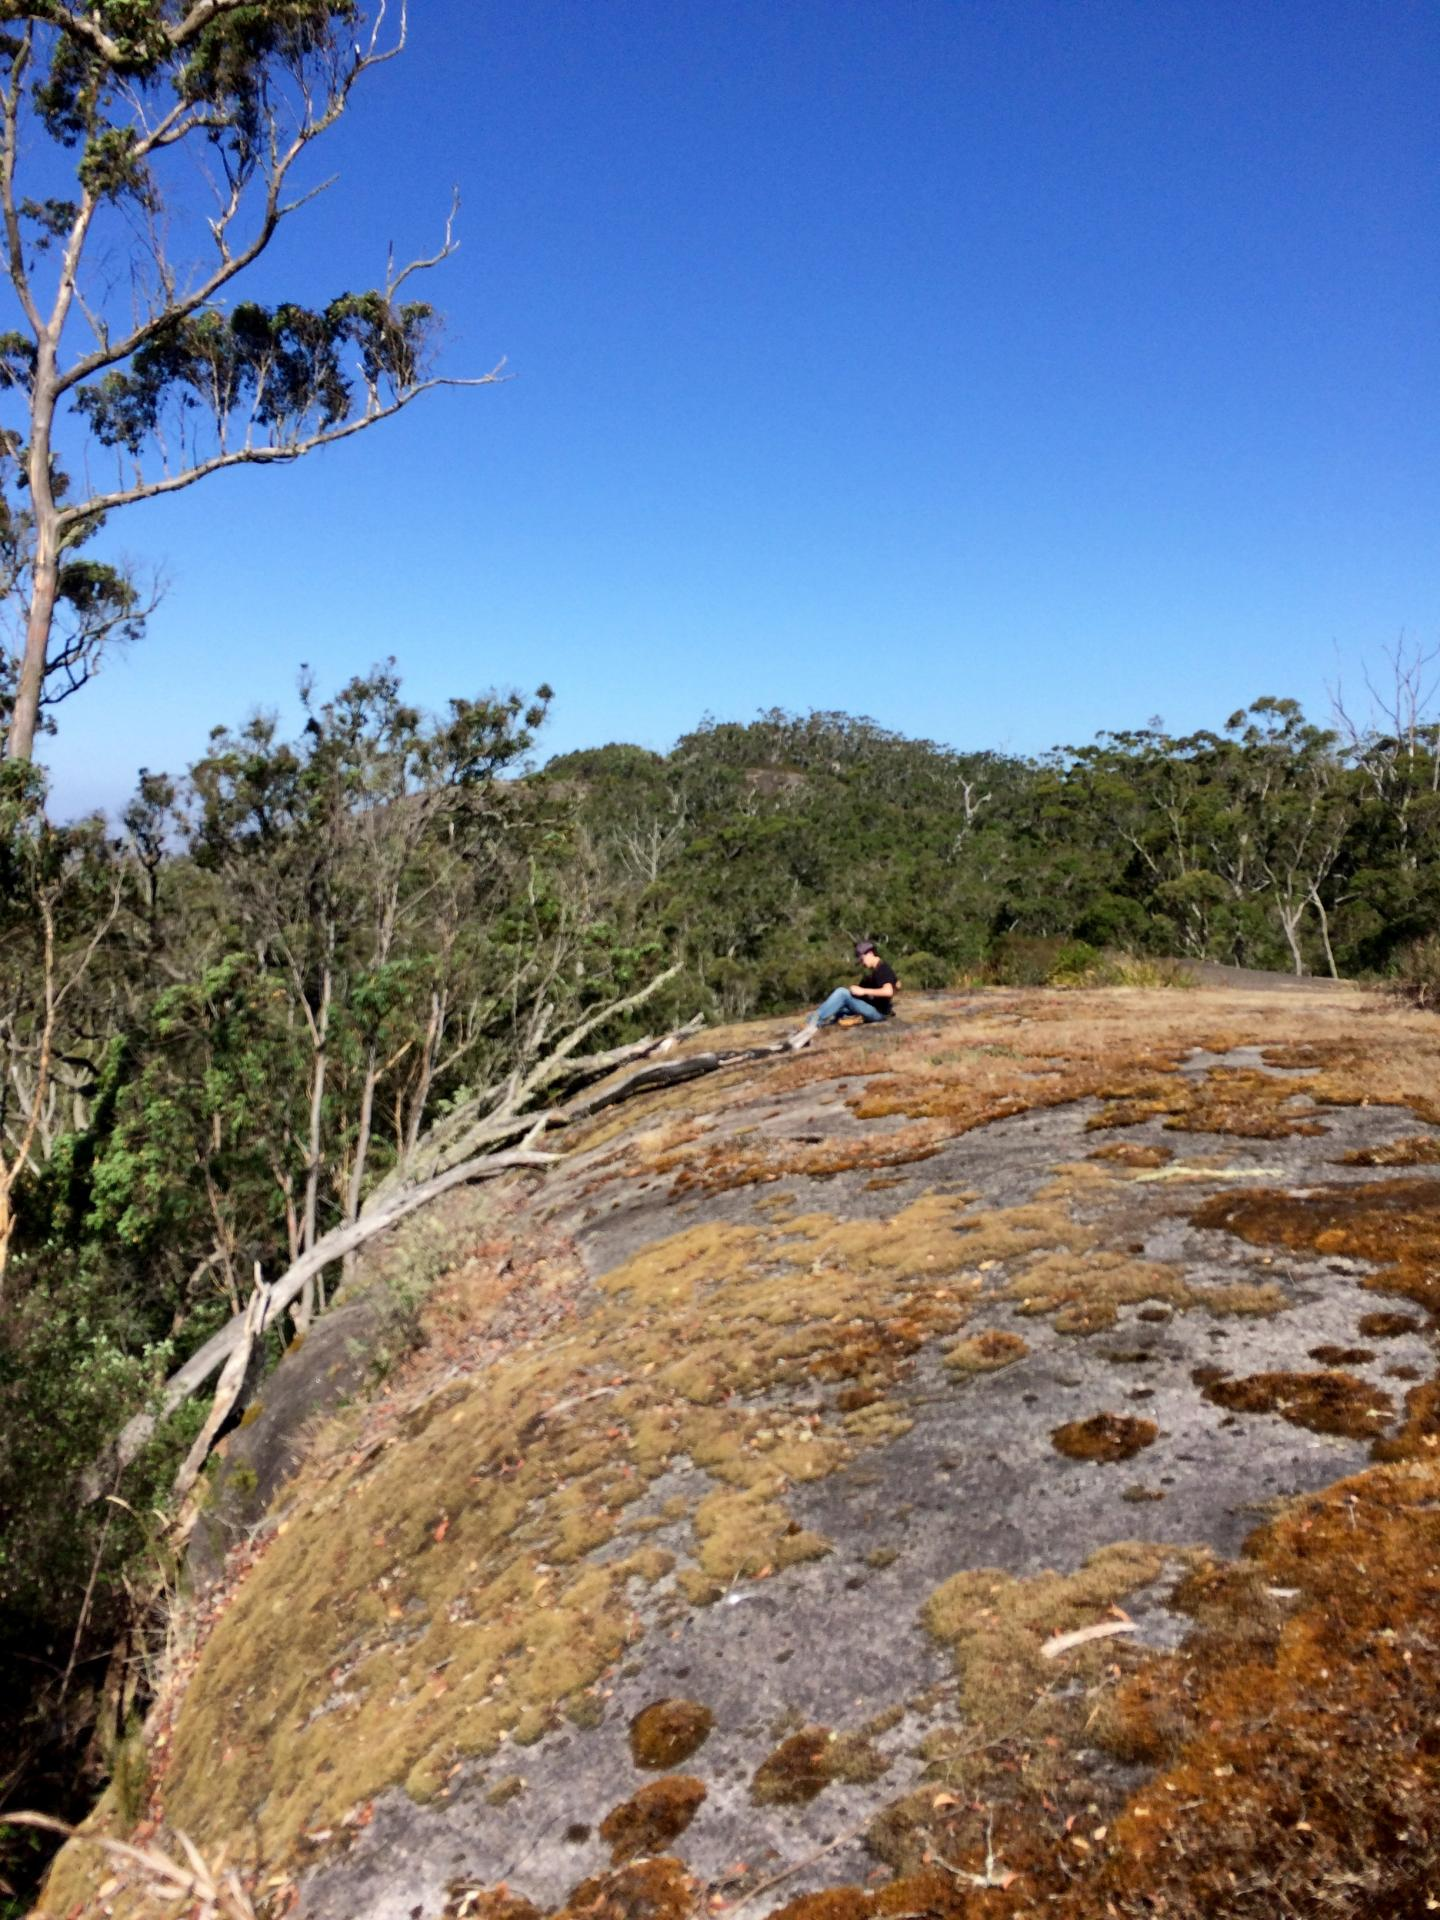 Lead Author in the Field on a Lichen-Covered Rock